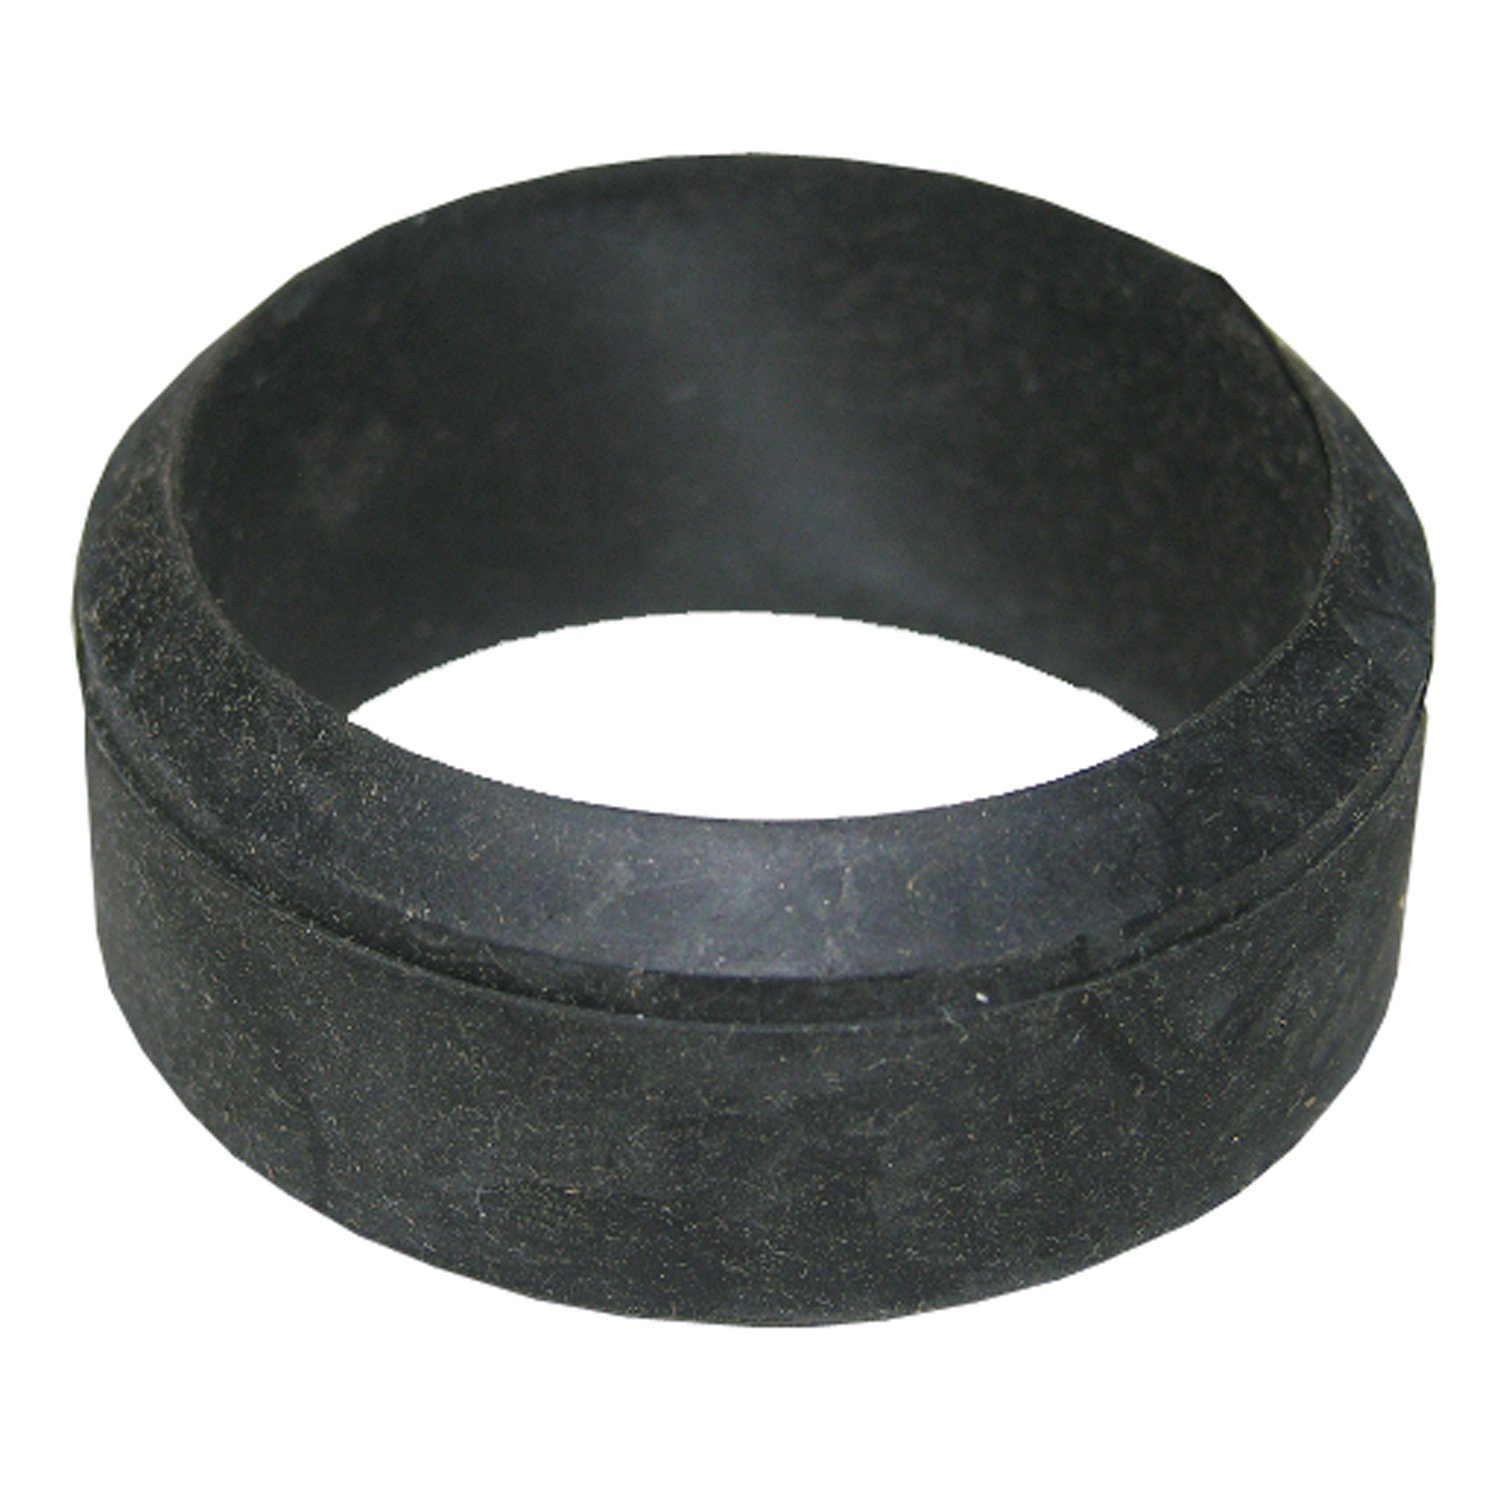 LASCO 13-1489 Rubber Replacement Donut Gasket fits 1-1/2'' Iron Pipe